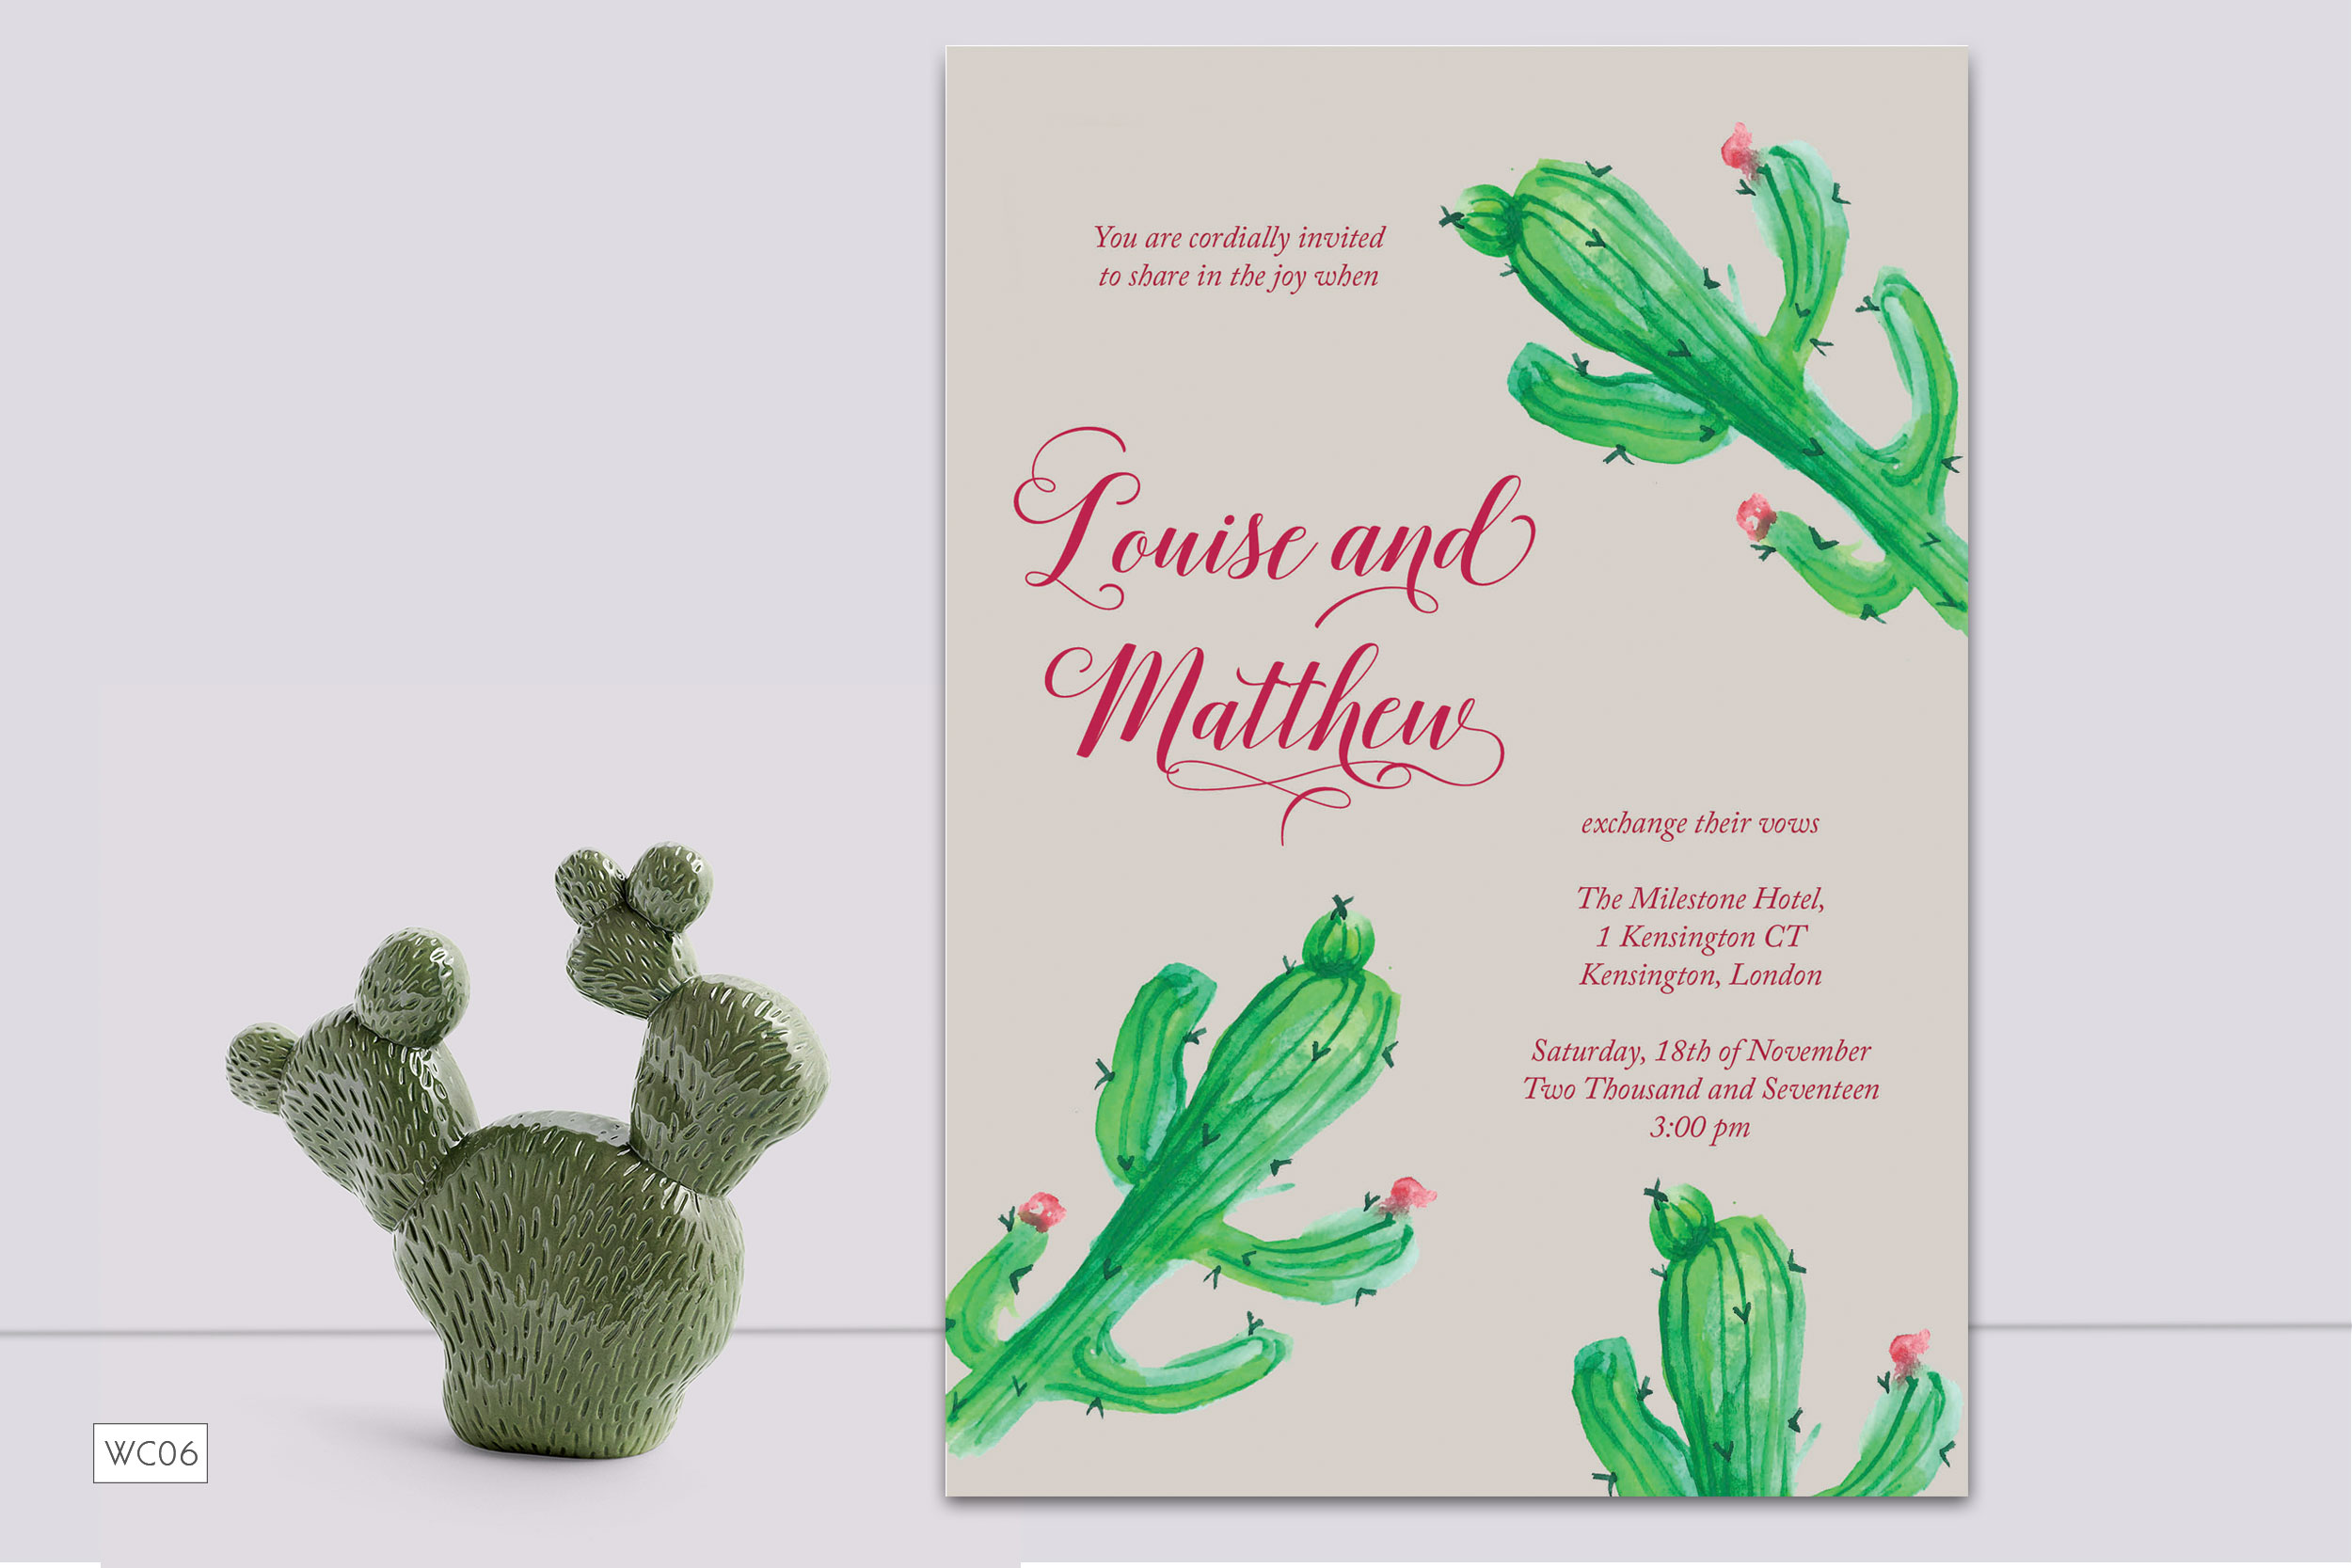 green-and-beige-cactus-wedding-invitation.jpg